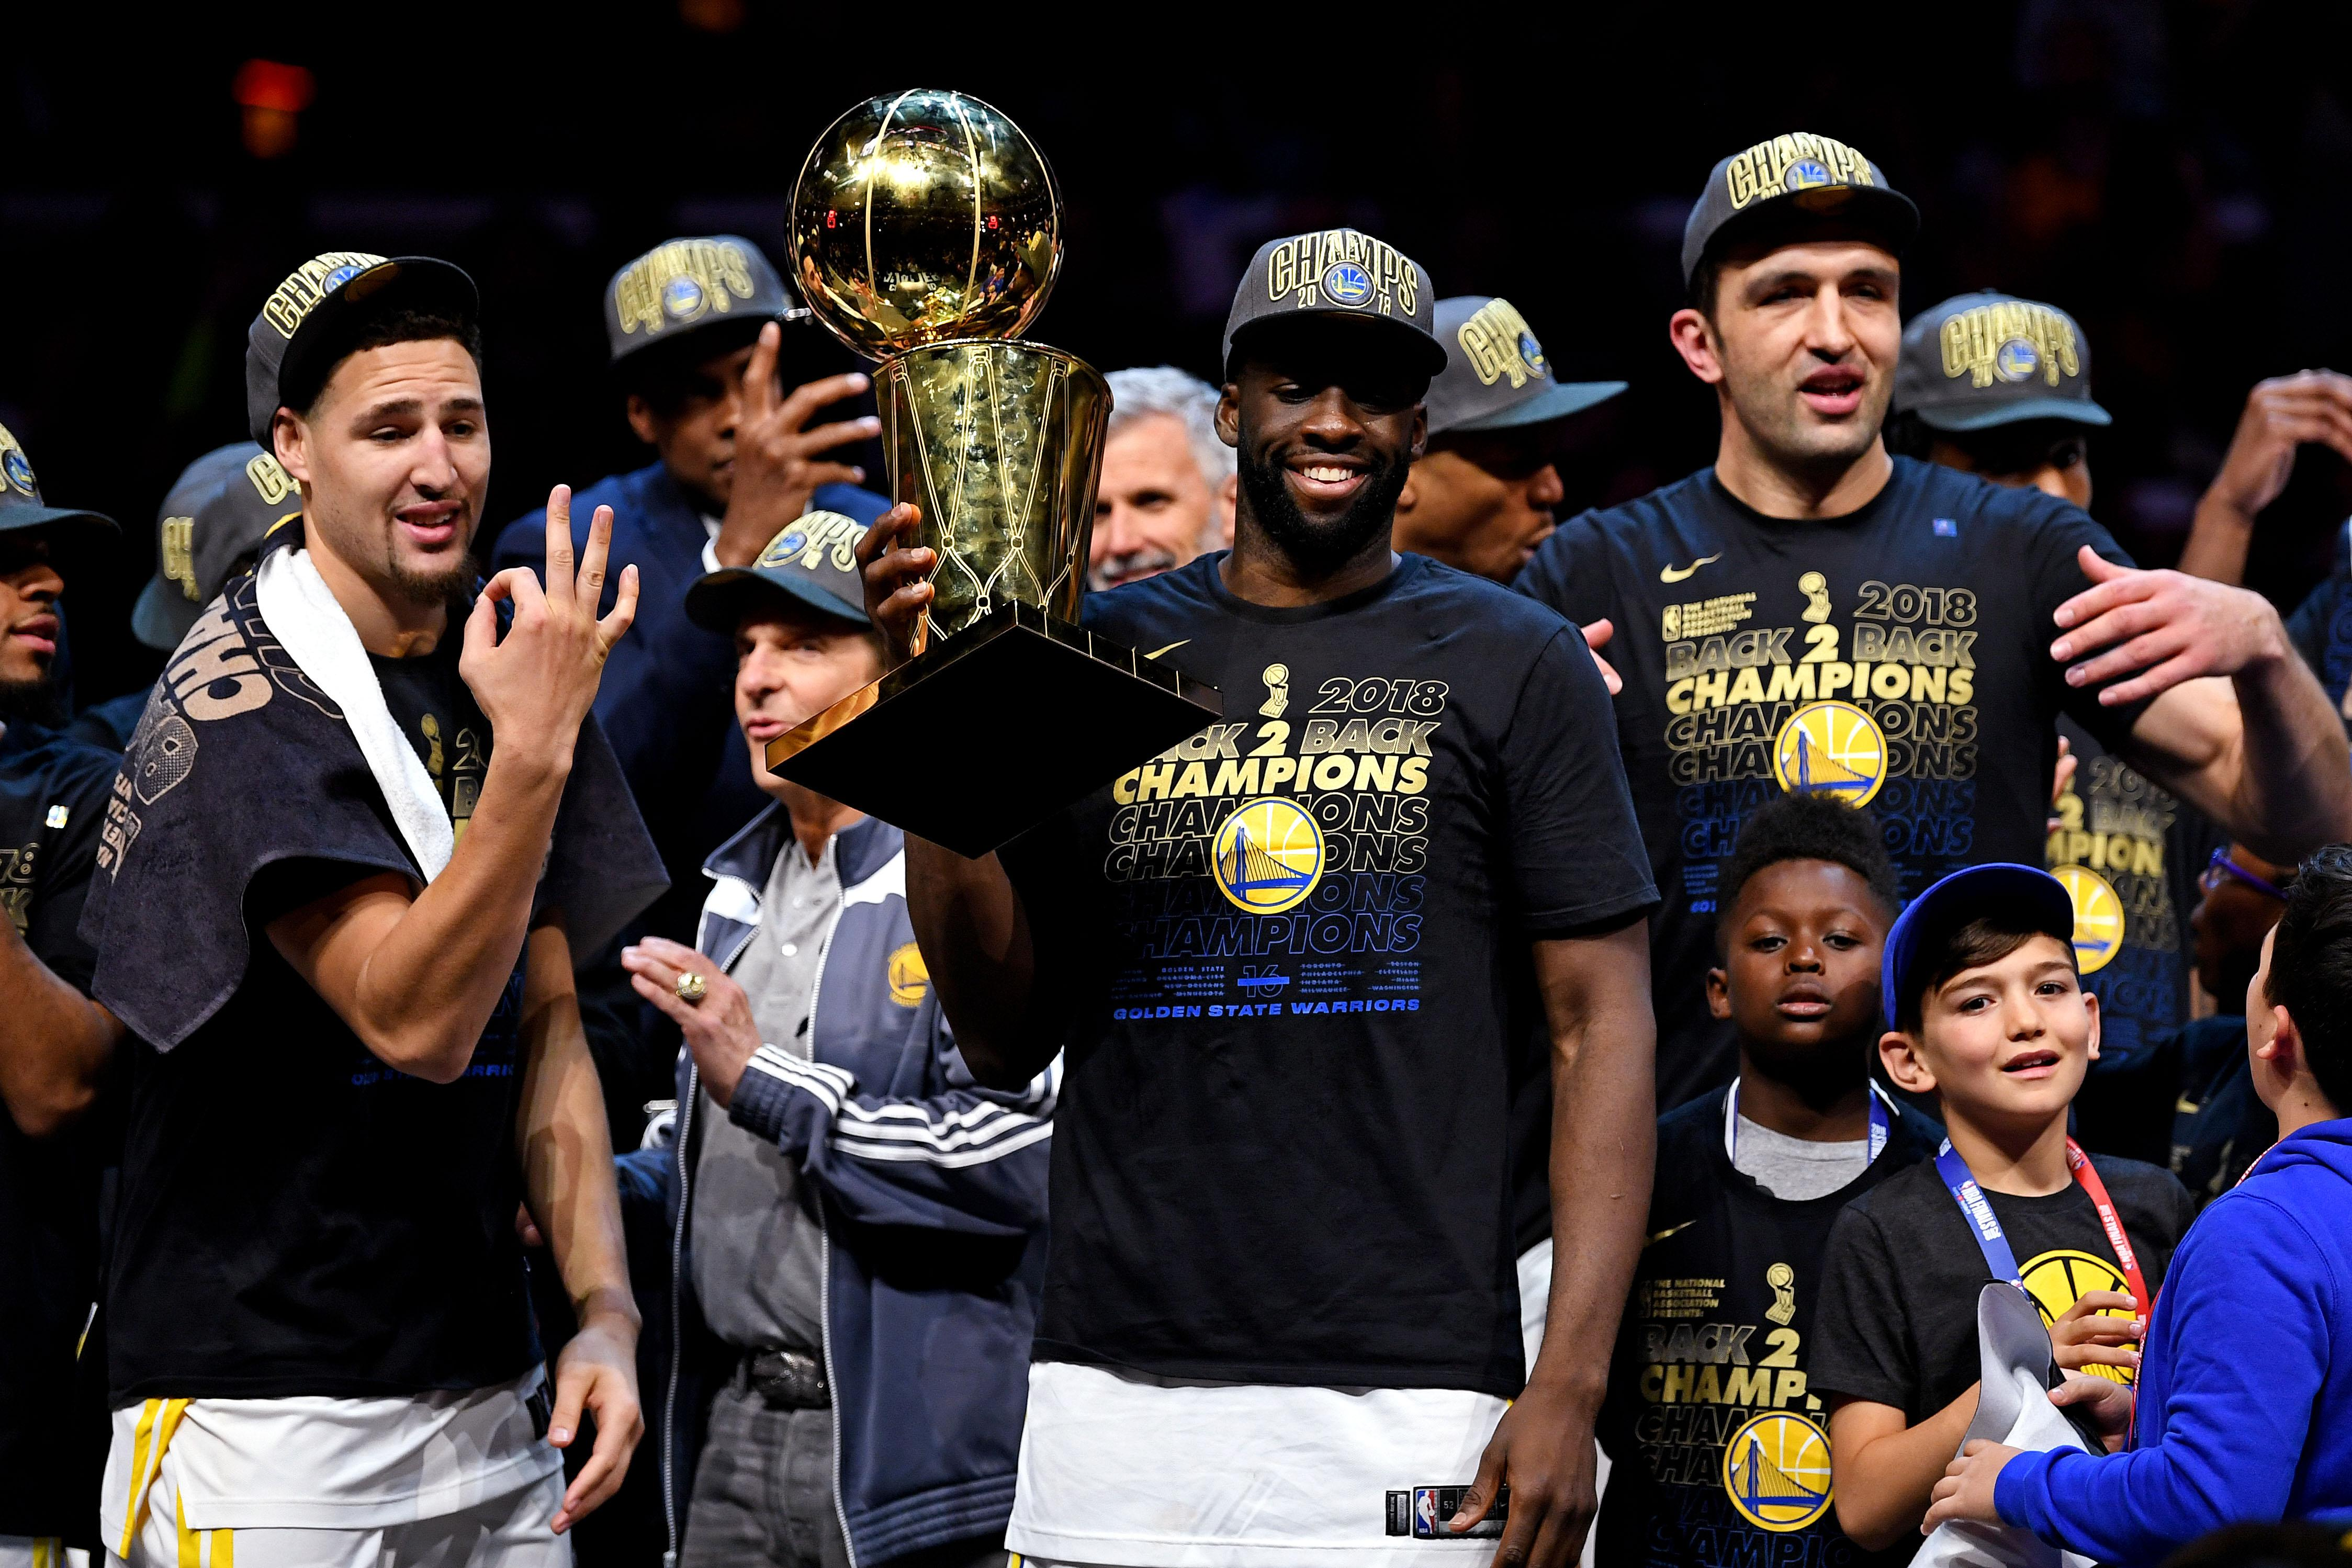 The Golden State Warriors celebrate after winning the NBA championship with a wipeout of Cleveland Cavaliers